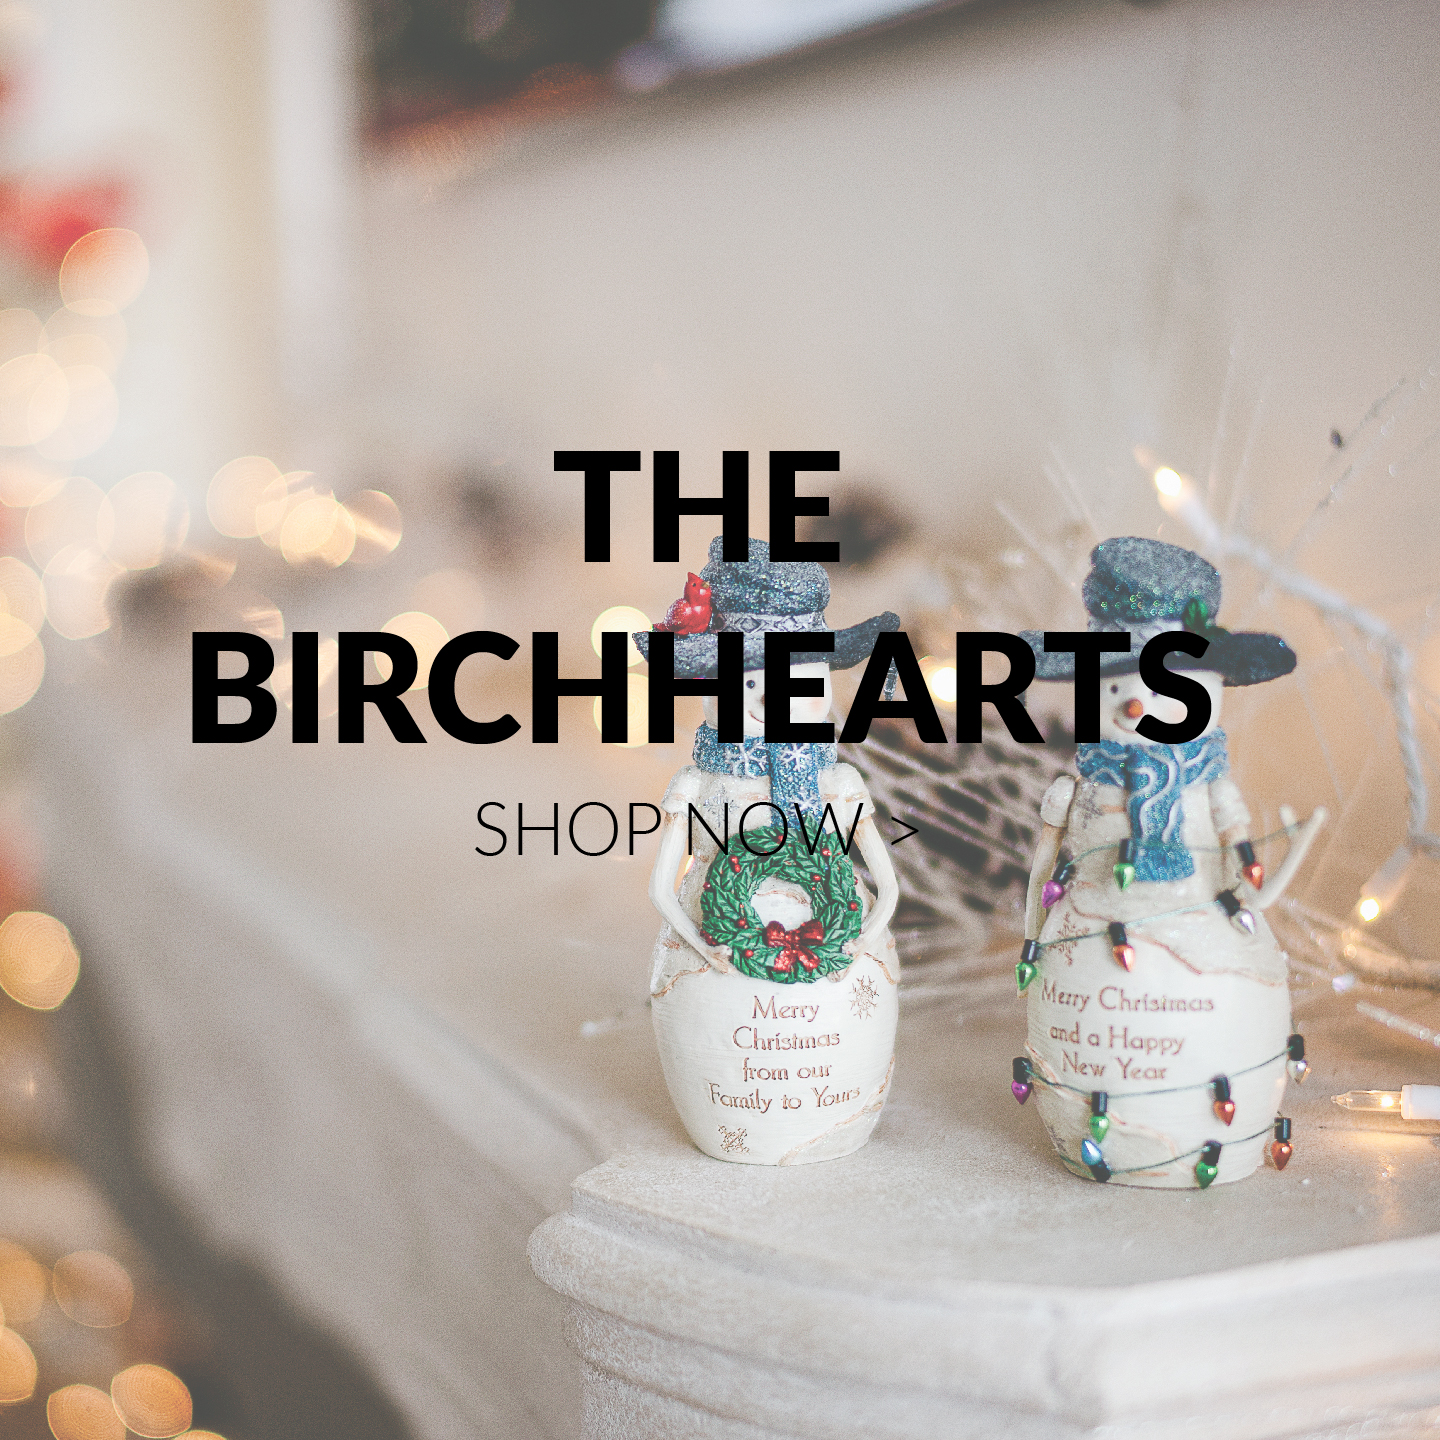 The Birchhearts